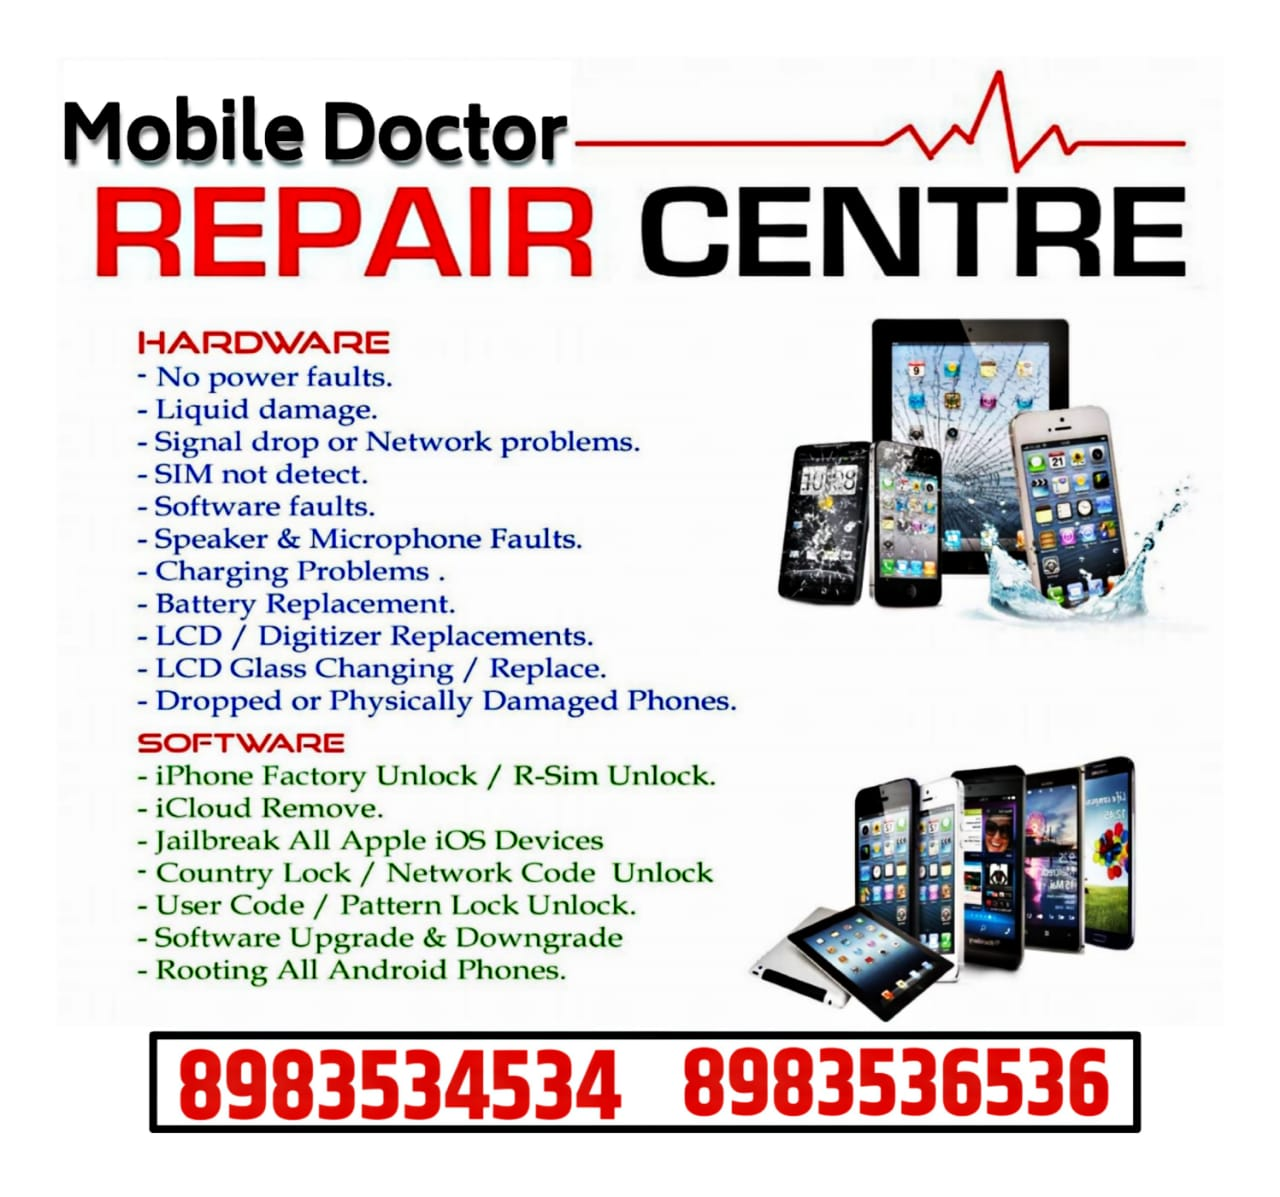 Mobile Doctor Repair Centre in Viman Nagar, Pune-411014